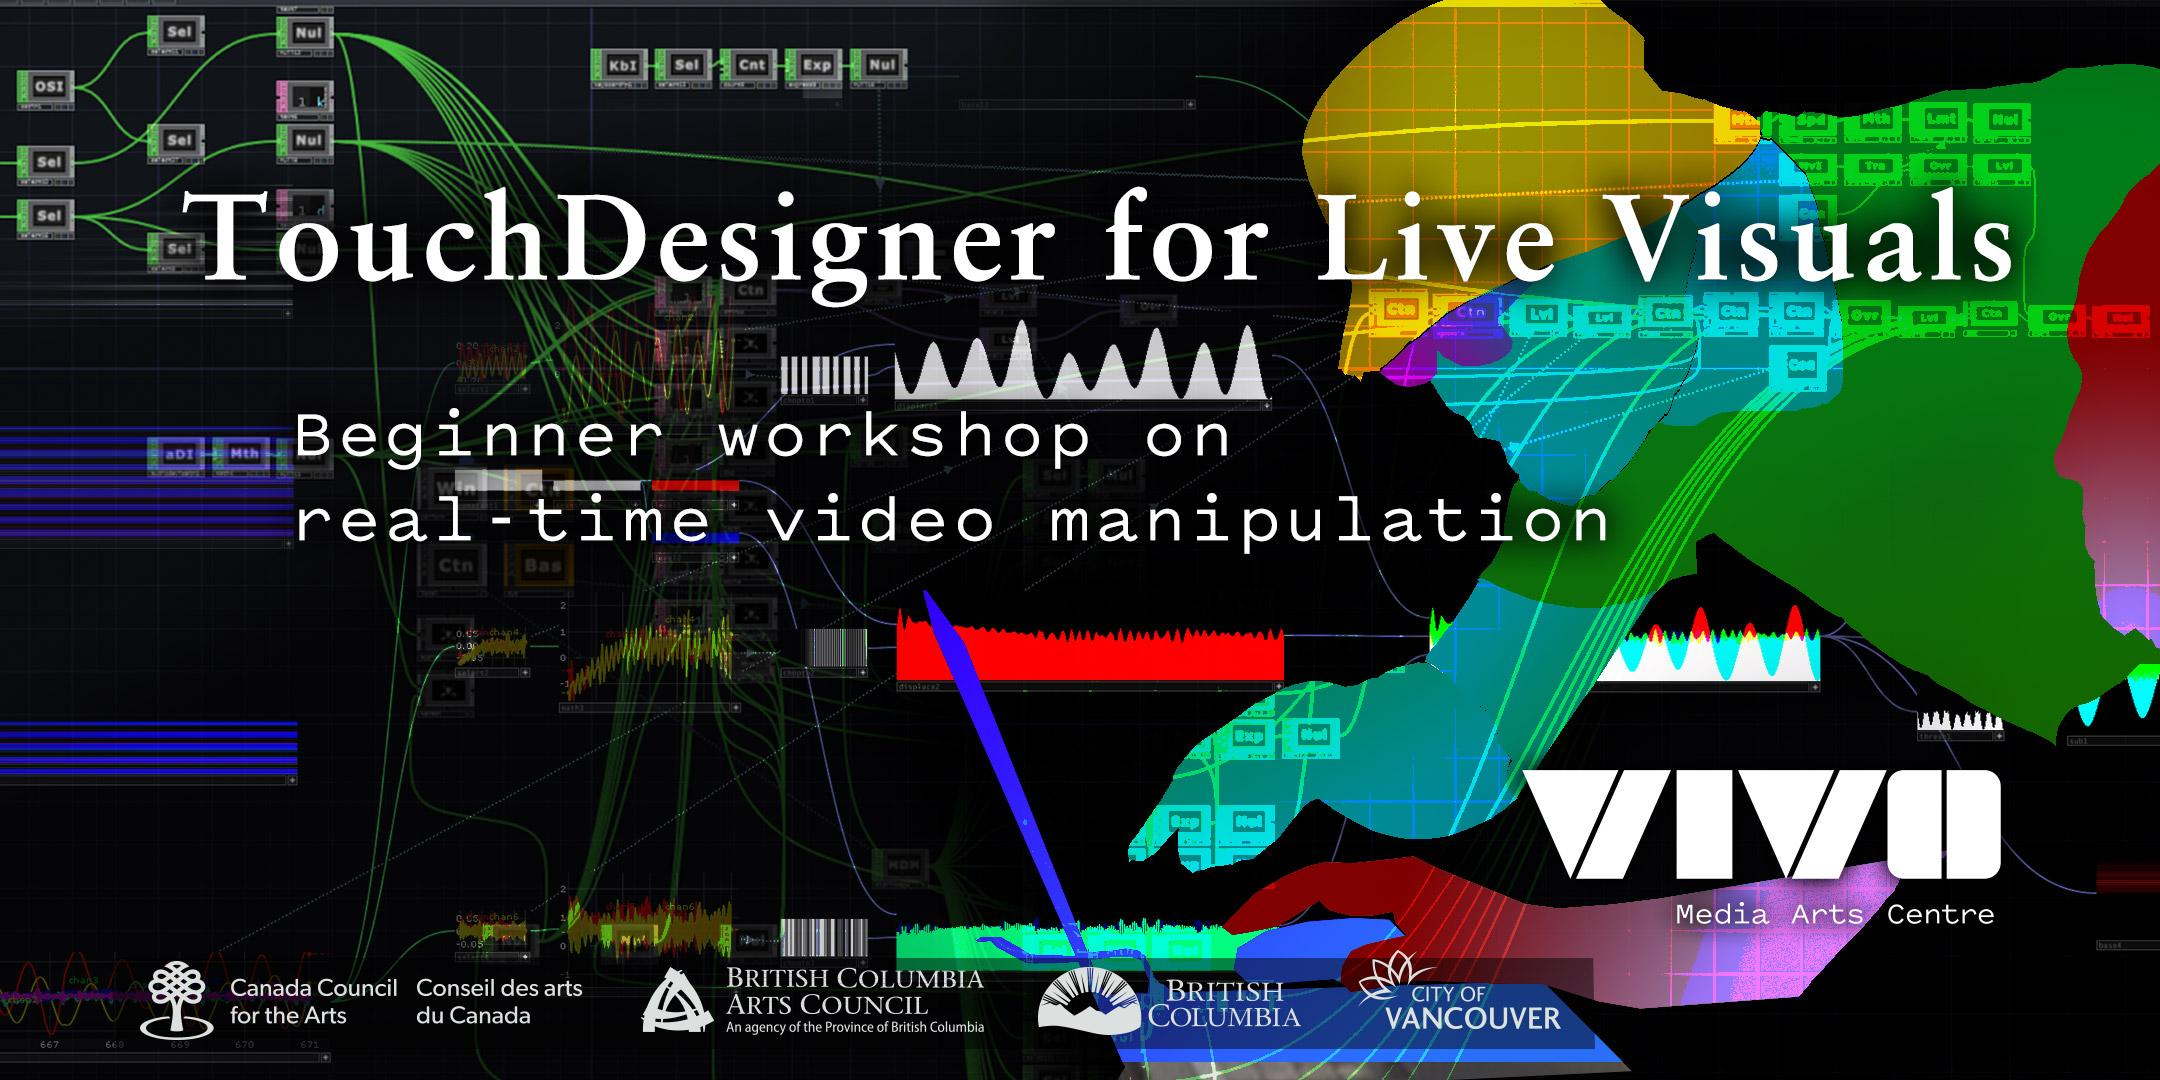 TouchDesigner for Live Visuals